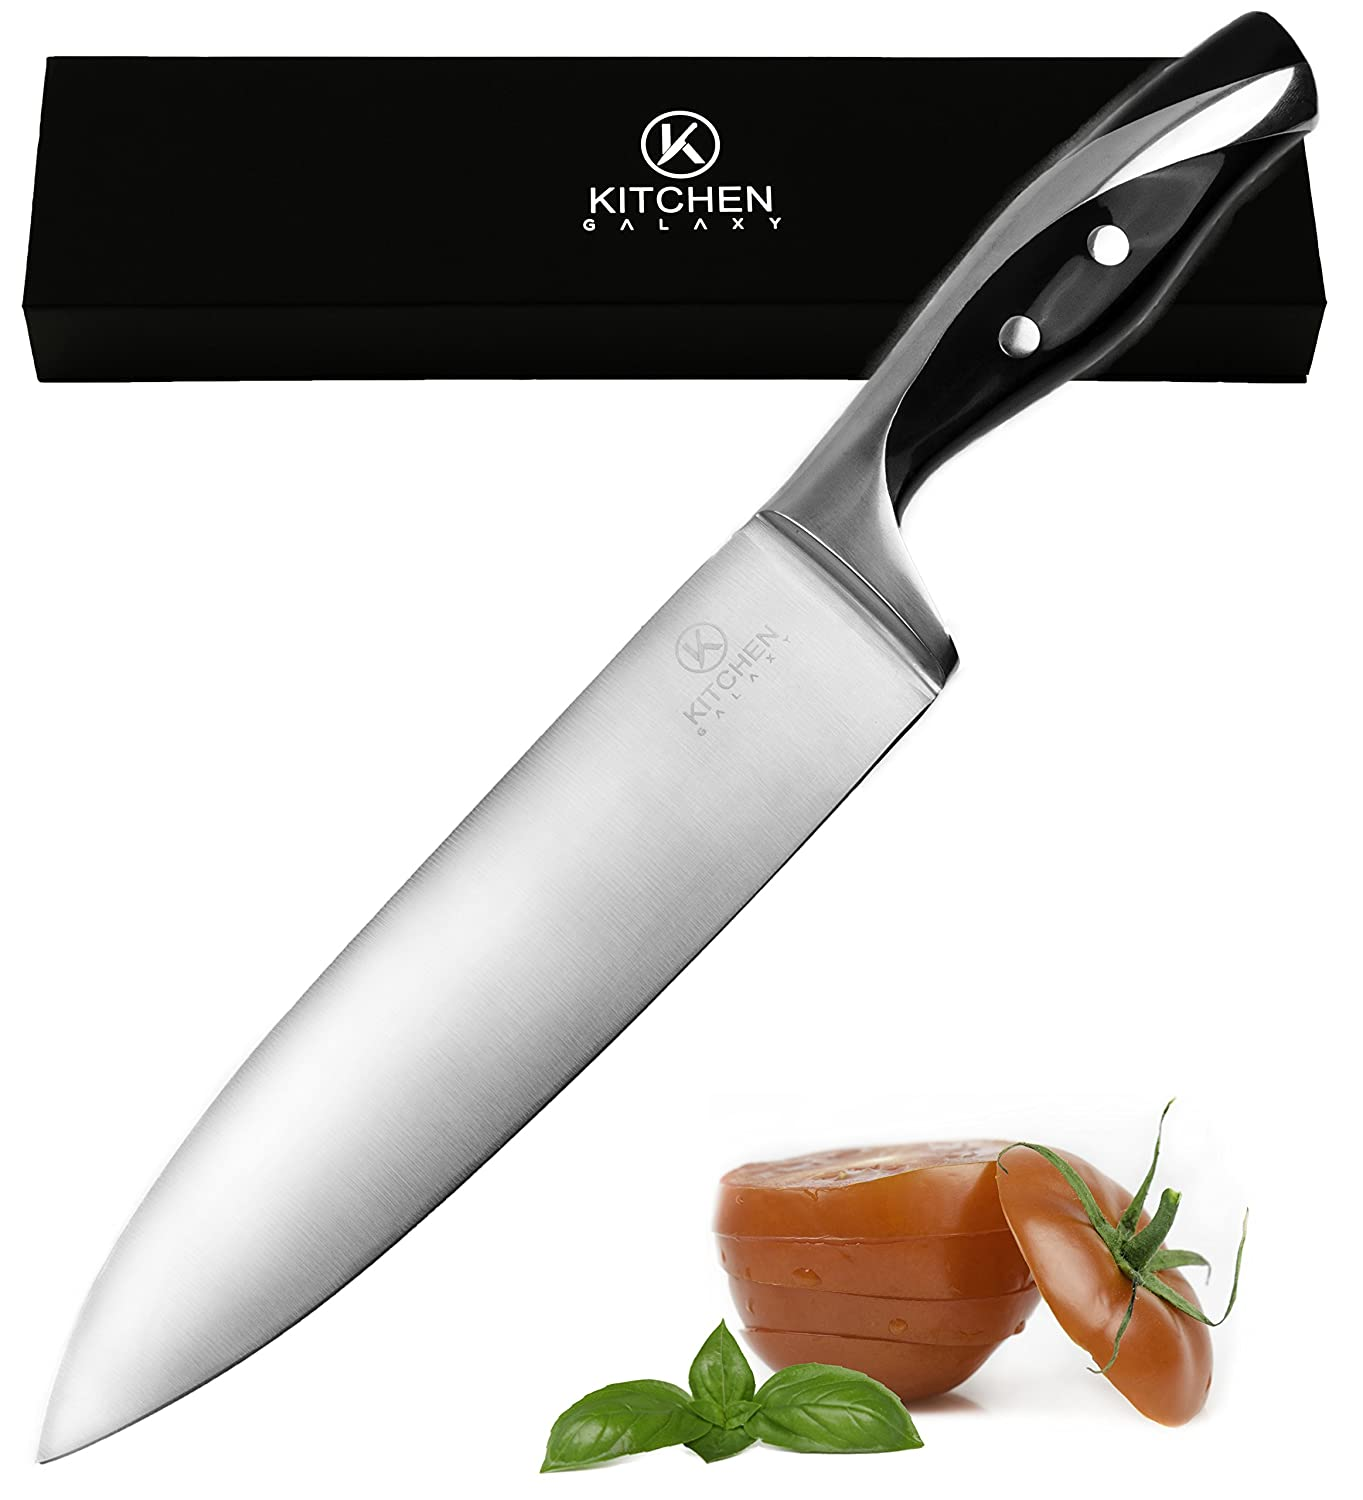 amazon com cutting 8 inch chef knife best value imagine your amazon com cutting 8 inch chef knife best value imagine your japanese high carbon steel cooking knive slicing thru veggies and meat like butter as